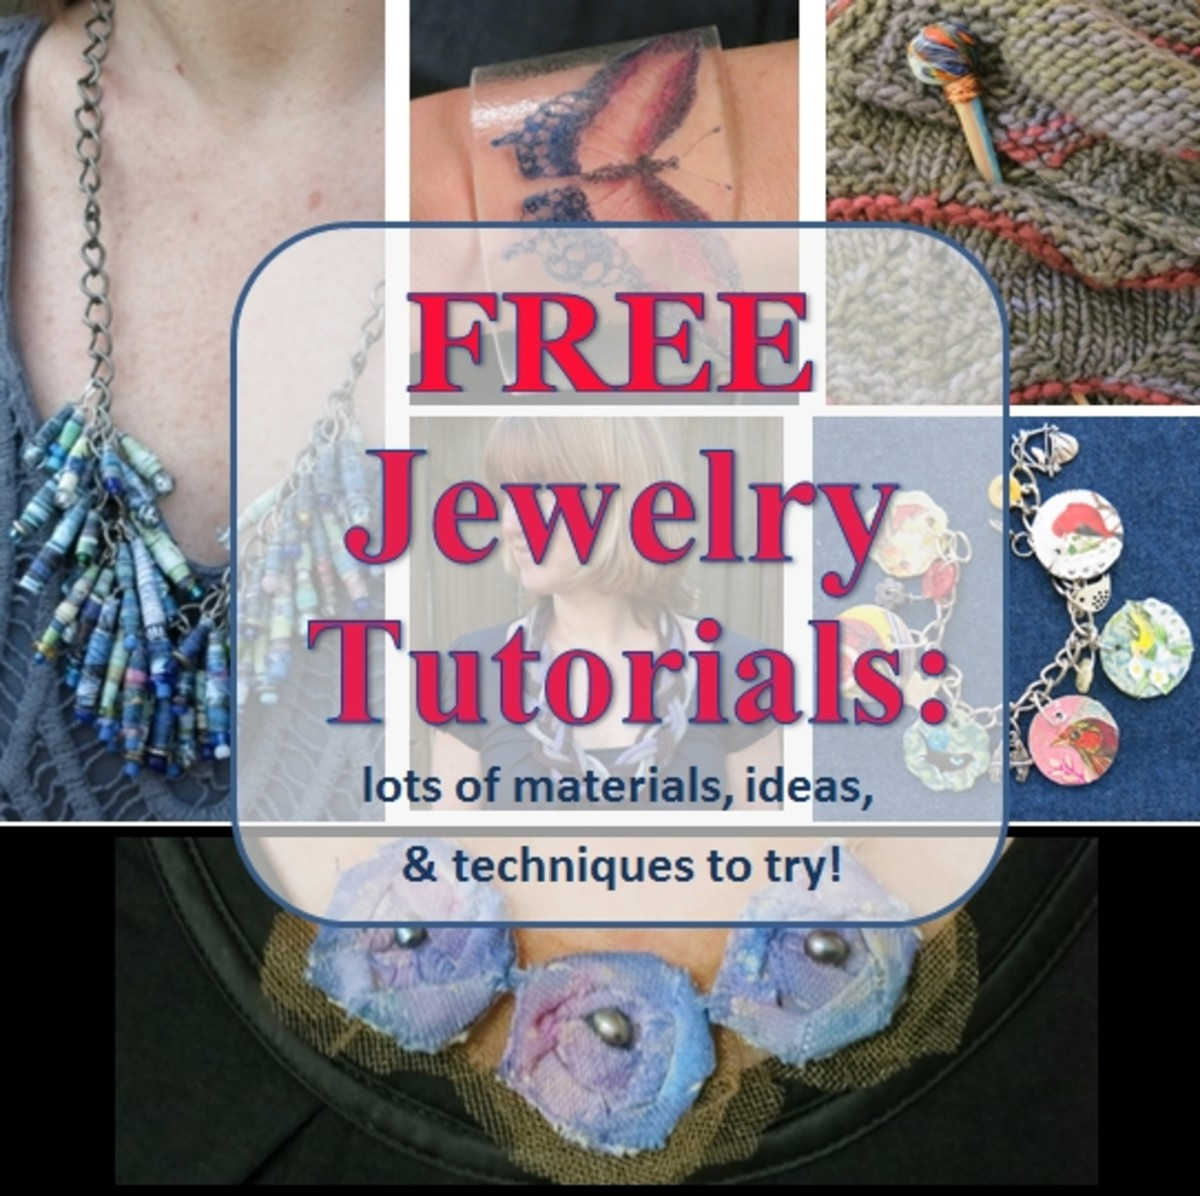 Free Jewelry Making Tutorials: Crafting Handmade Pins, Bracelets, Necklaces and More